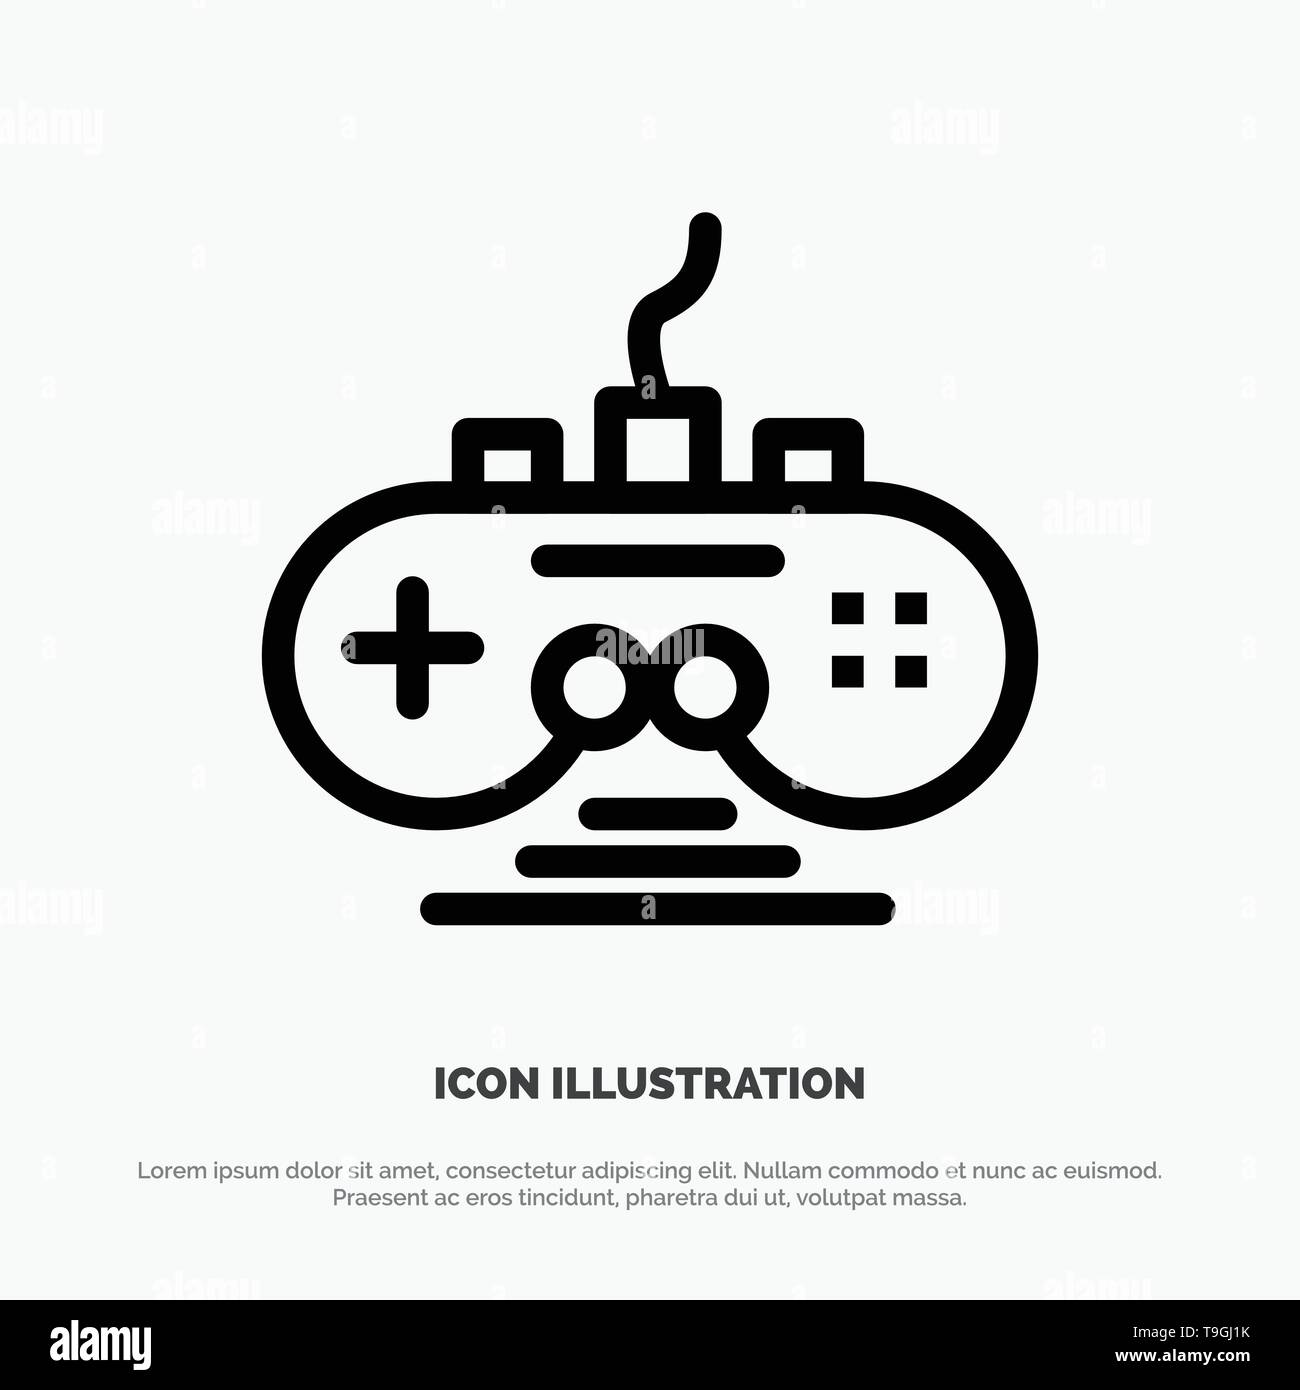 Controller, Game, Game Controller, Gamepad Vector Line Icon - Stock Image